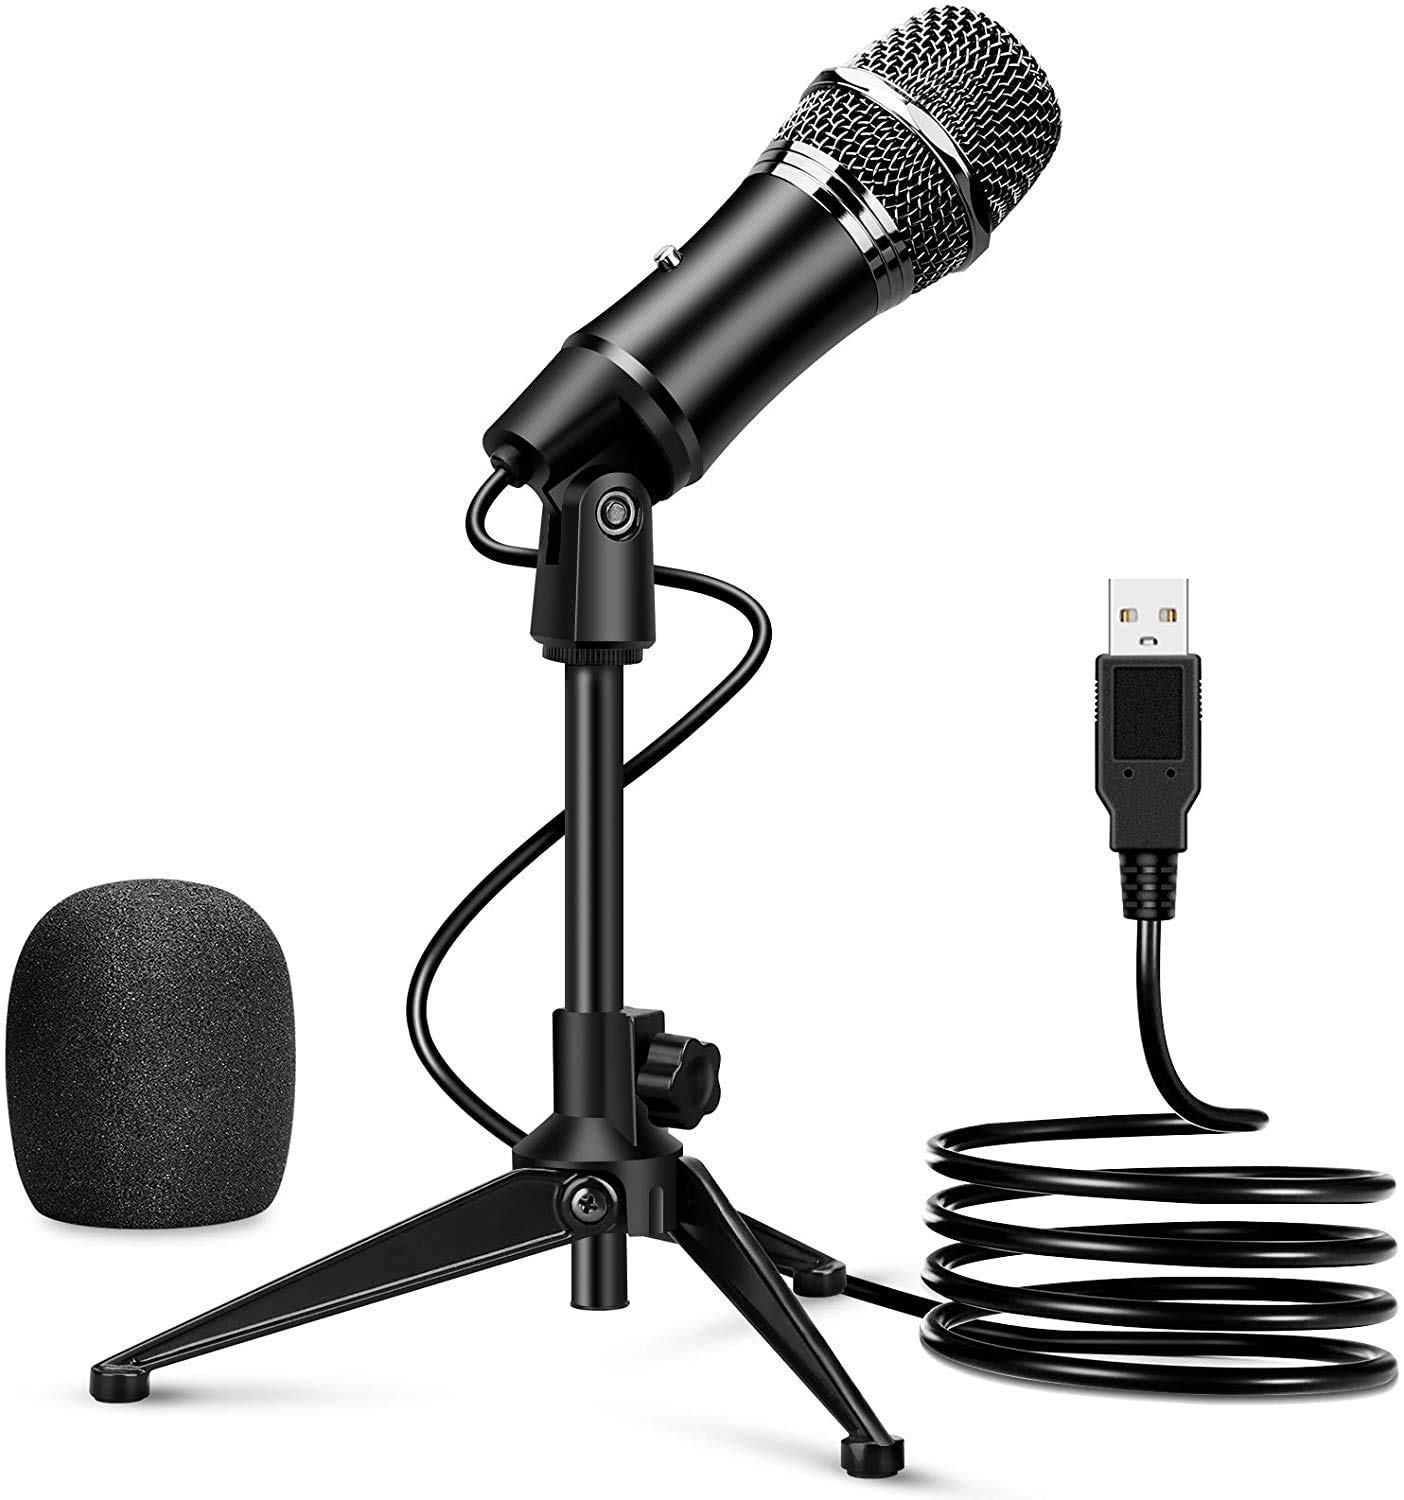 USB Microphone for Computer, Electop Professional Desktop Studio USB Condenser Microphone, PC Mic with Tripod Stand, Plug & Play, Compatible with Home Studio Windows/Mac Computer